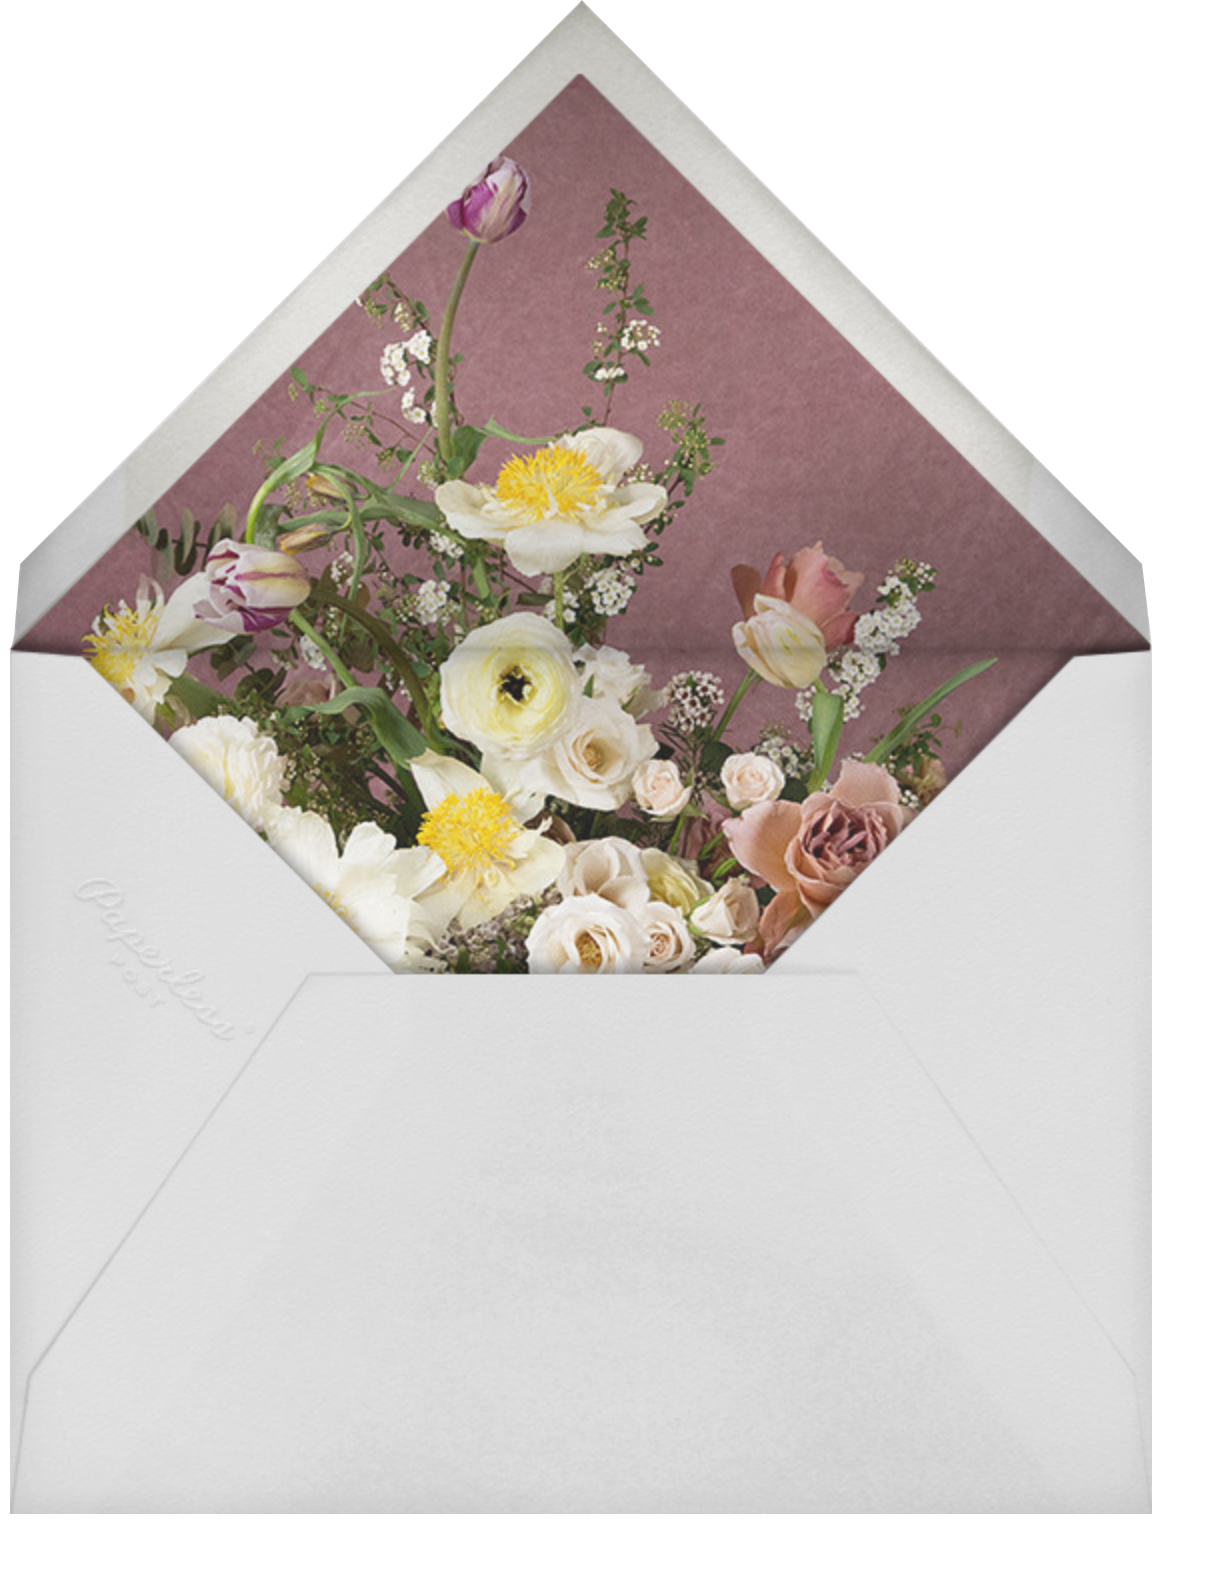 Messidor Photo - Putnam & Putnam - Mother's Day - envelope back